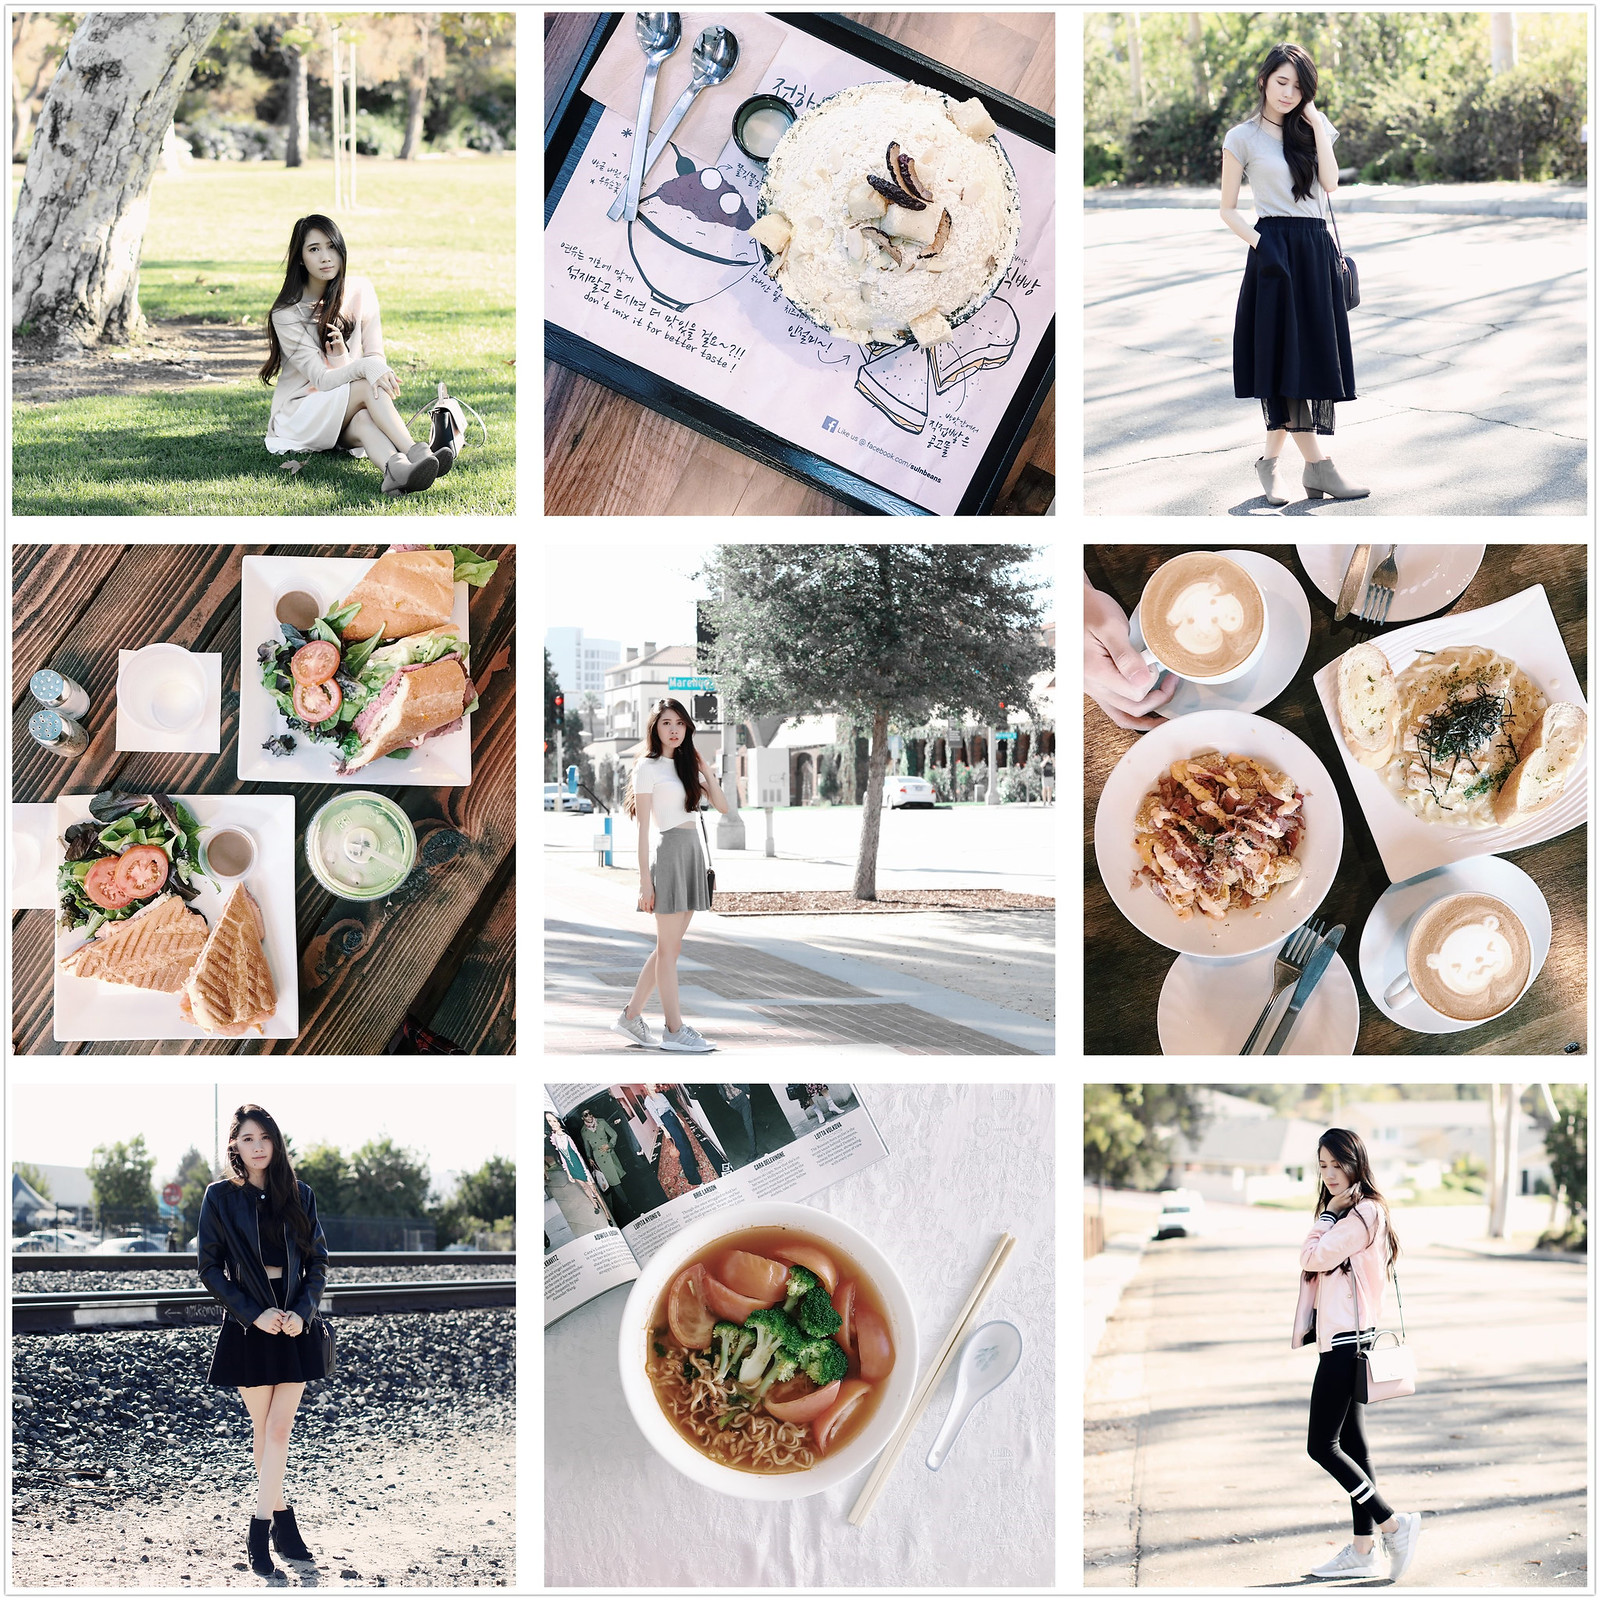 october2016-instagram-roundup-fashion-ootd-lifestyle-foodie-dtla